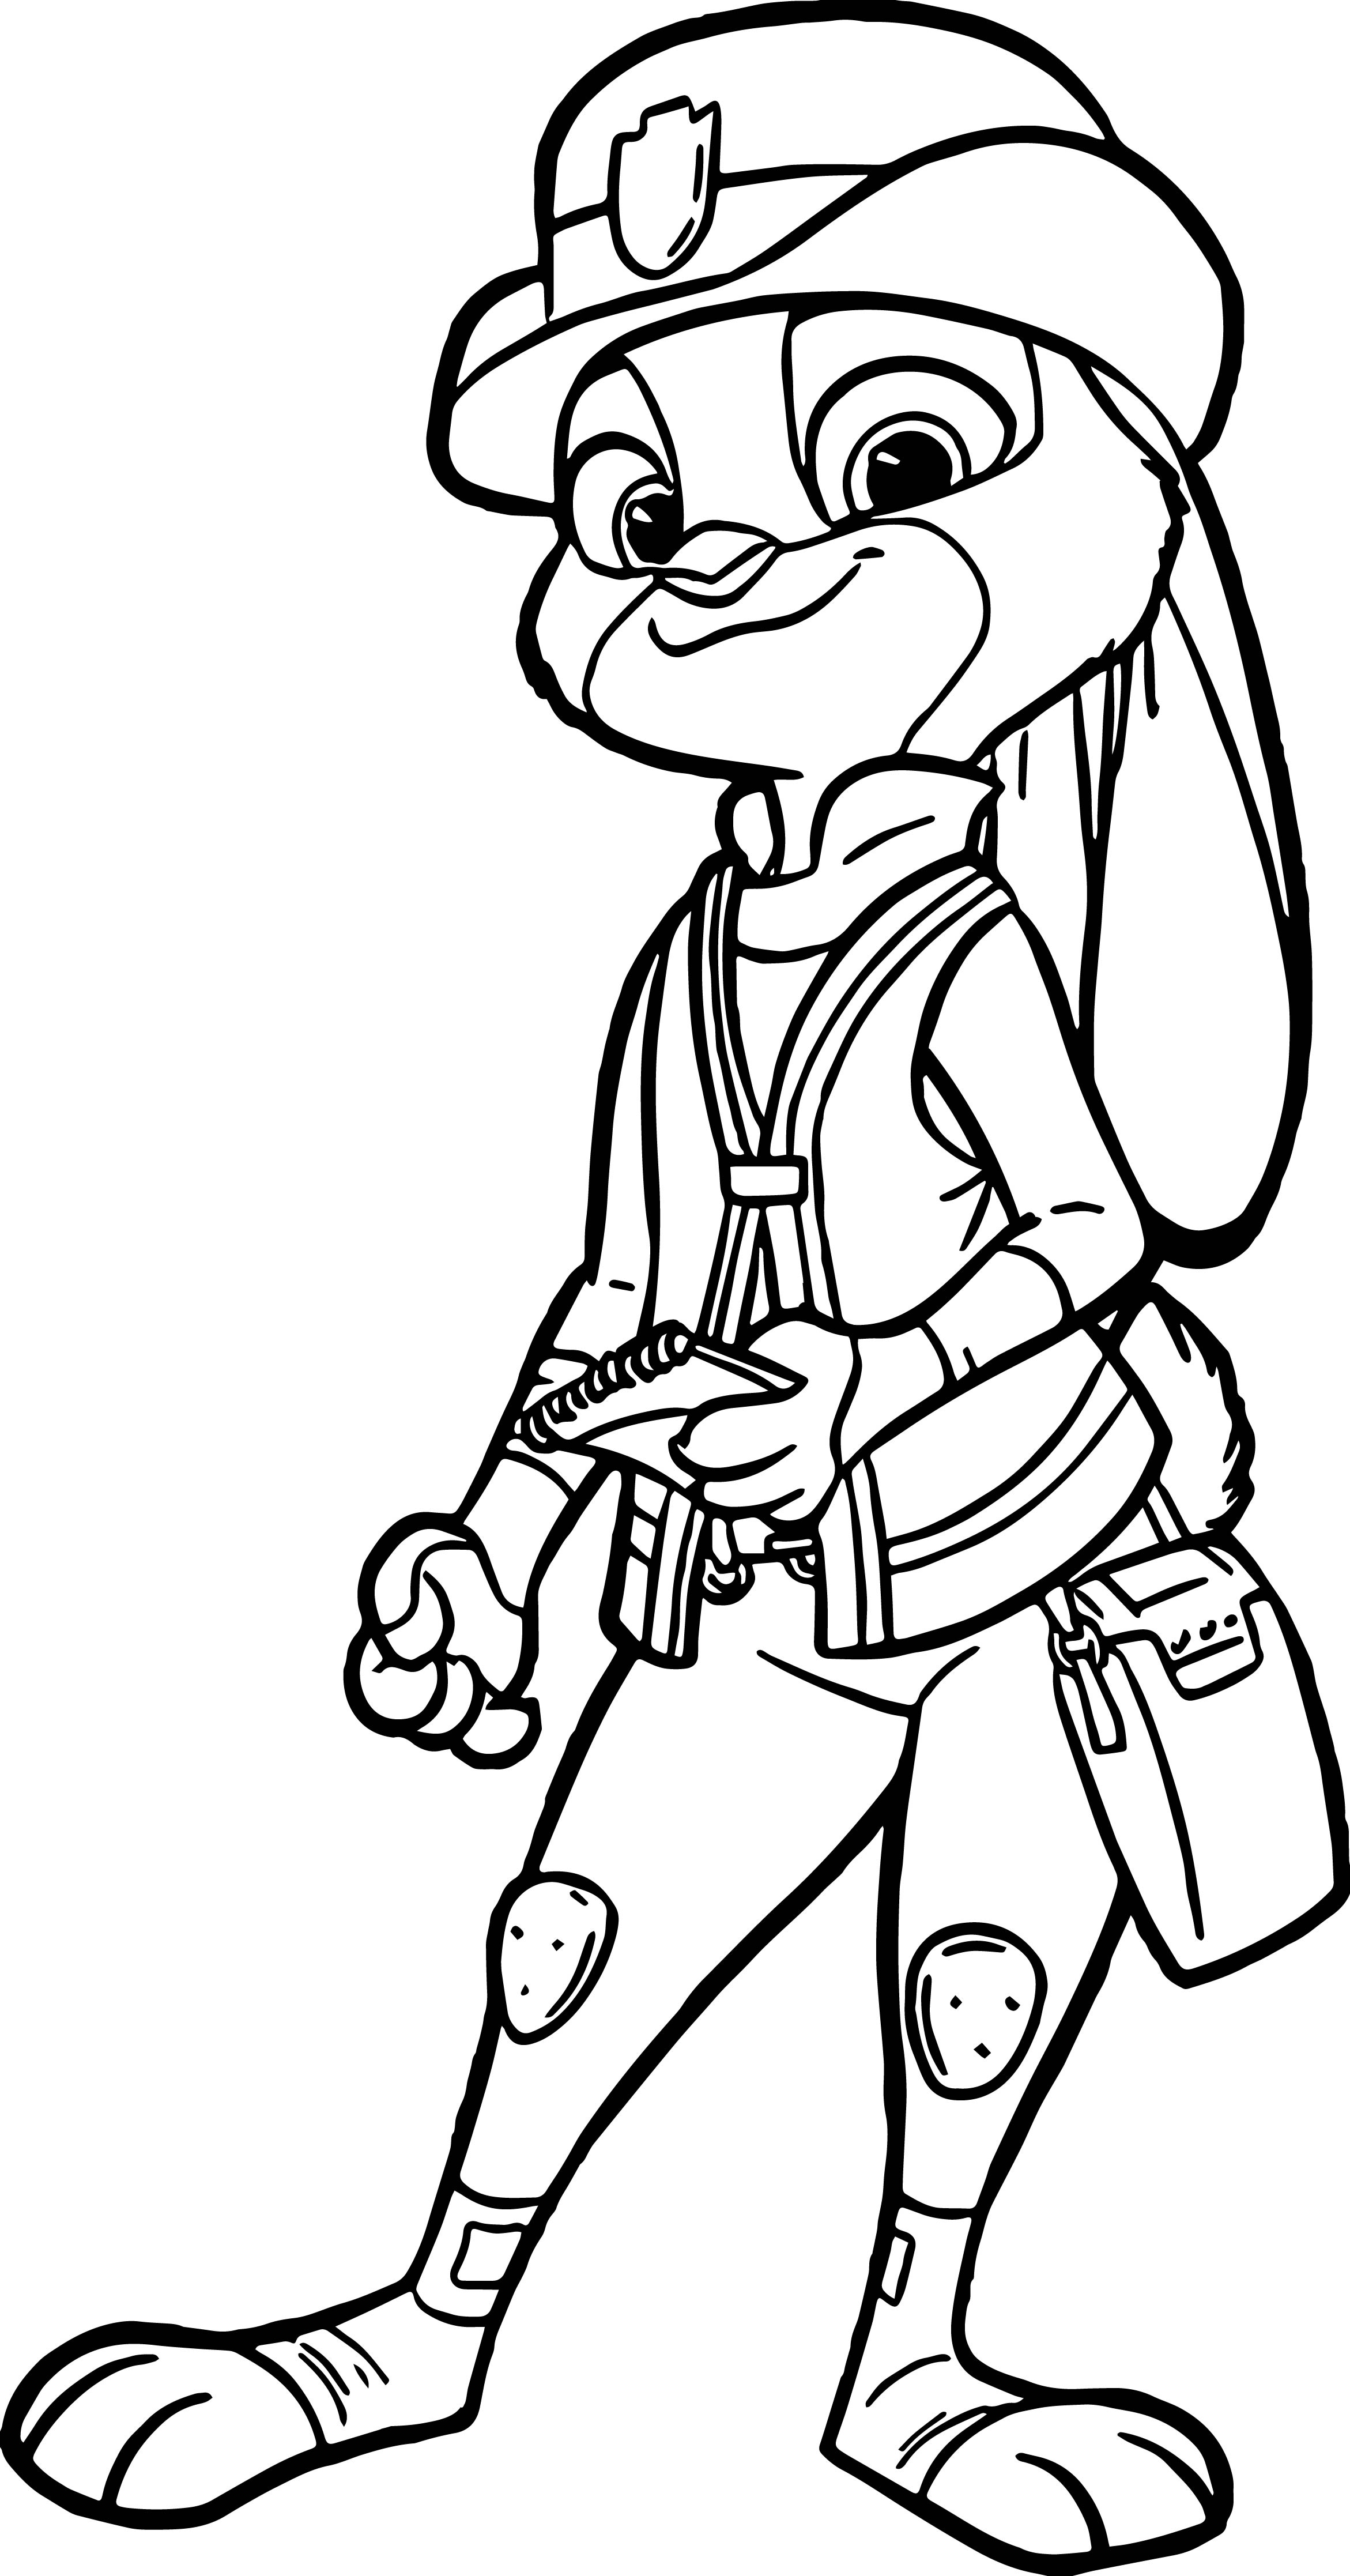 Judy Hopps Police Coloring Page